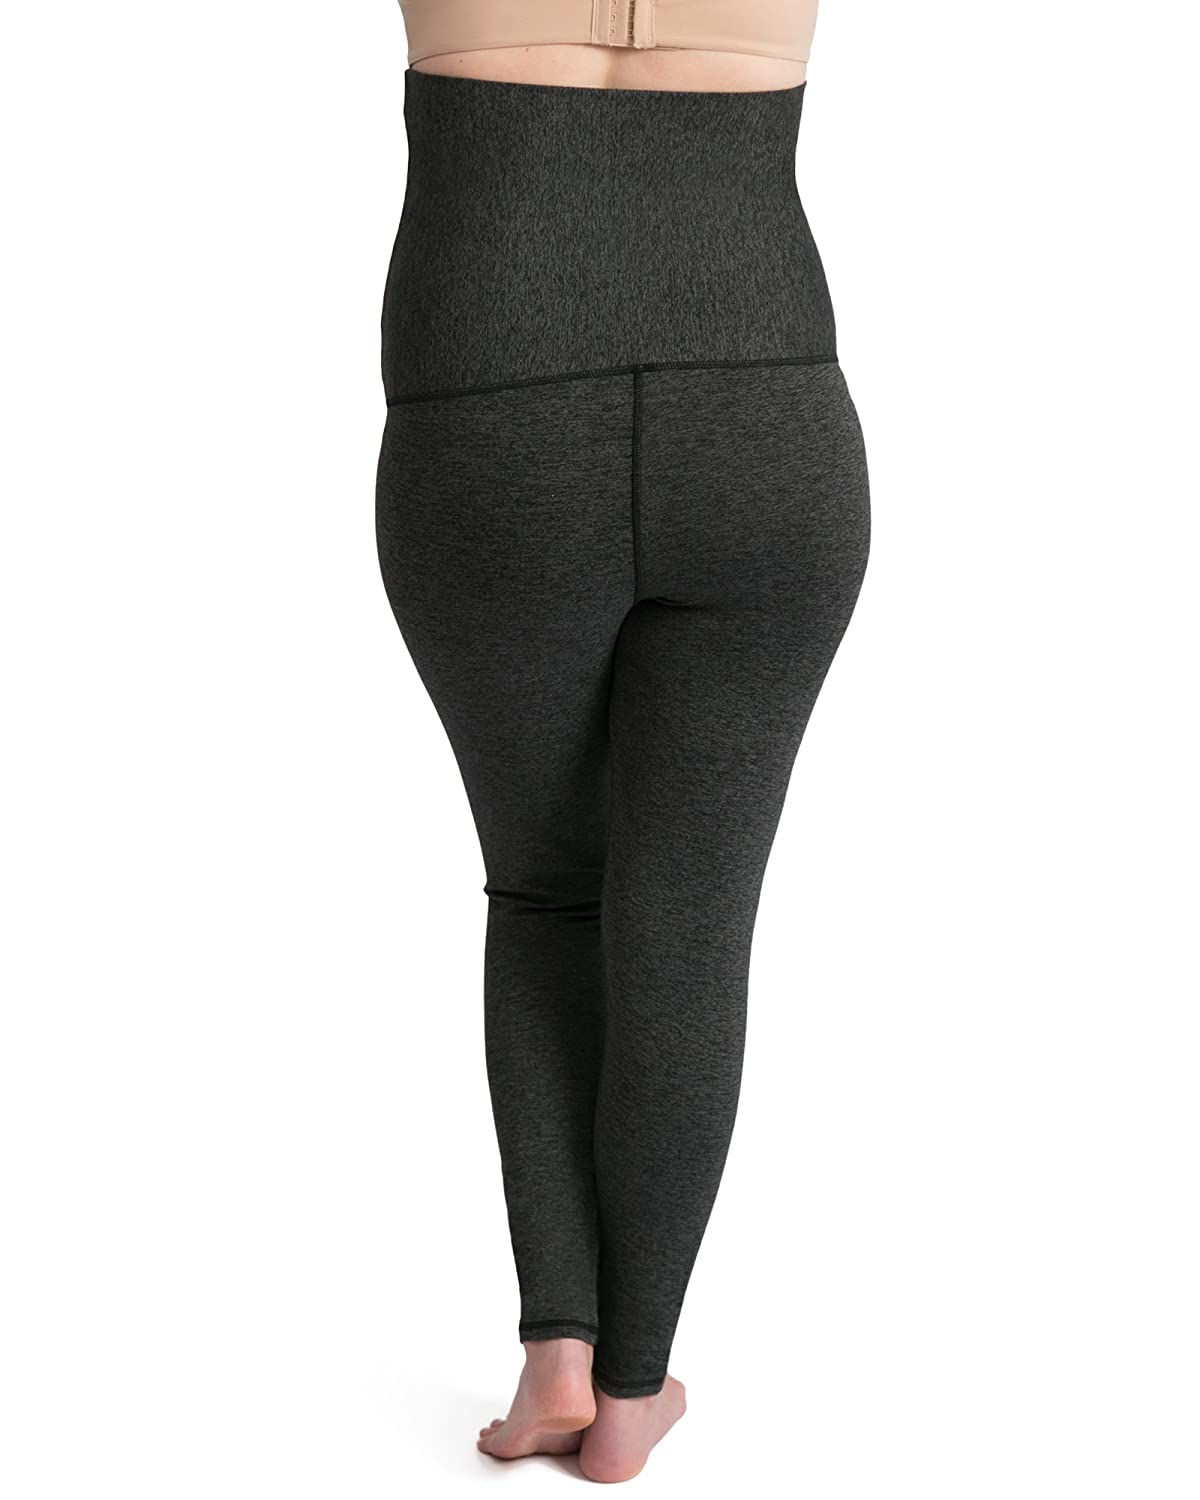 28f9dc3ab1e5cb Kindred Bravely The Louisa Ultra High-Waisted Over the Bump Maternity/Pregnancy  Leggings at Amazon Women's Clothing store: